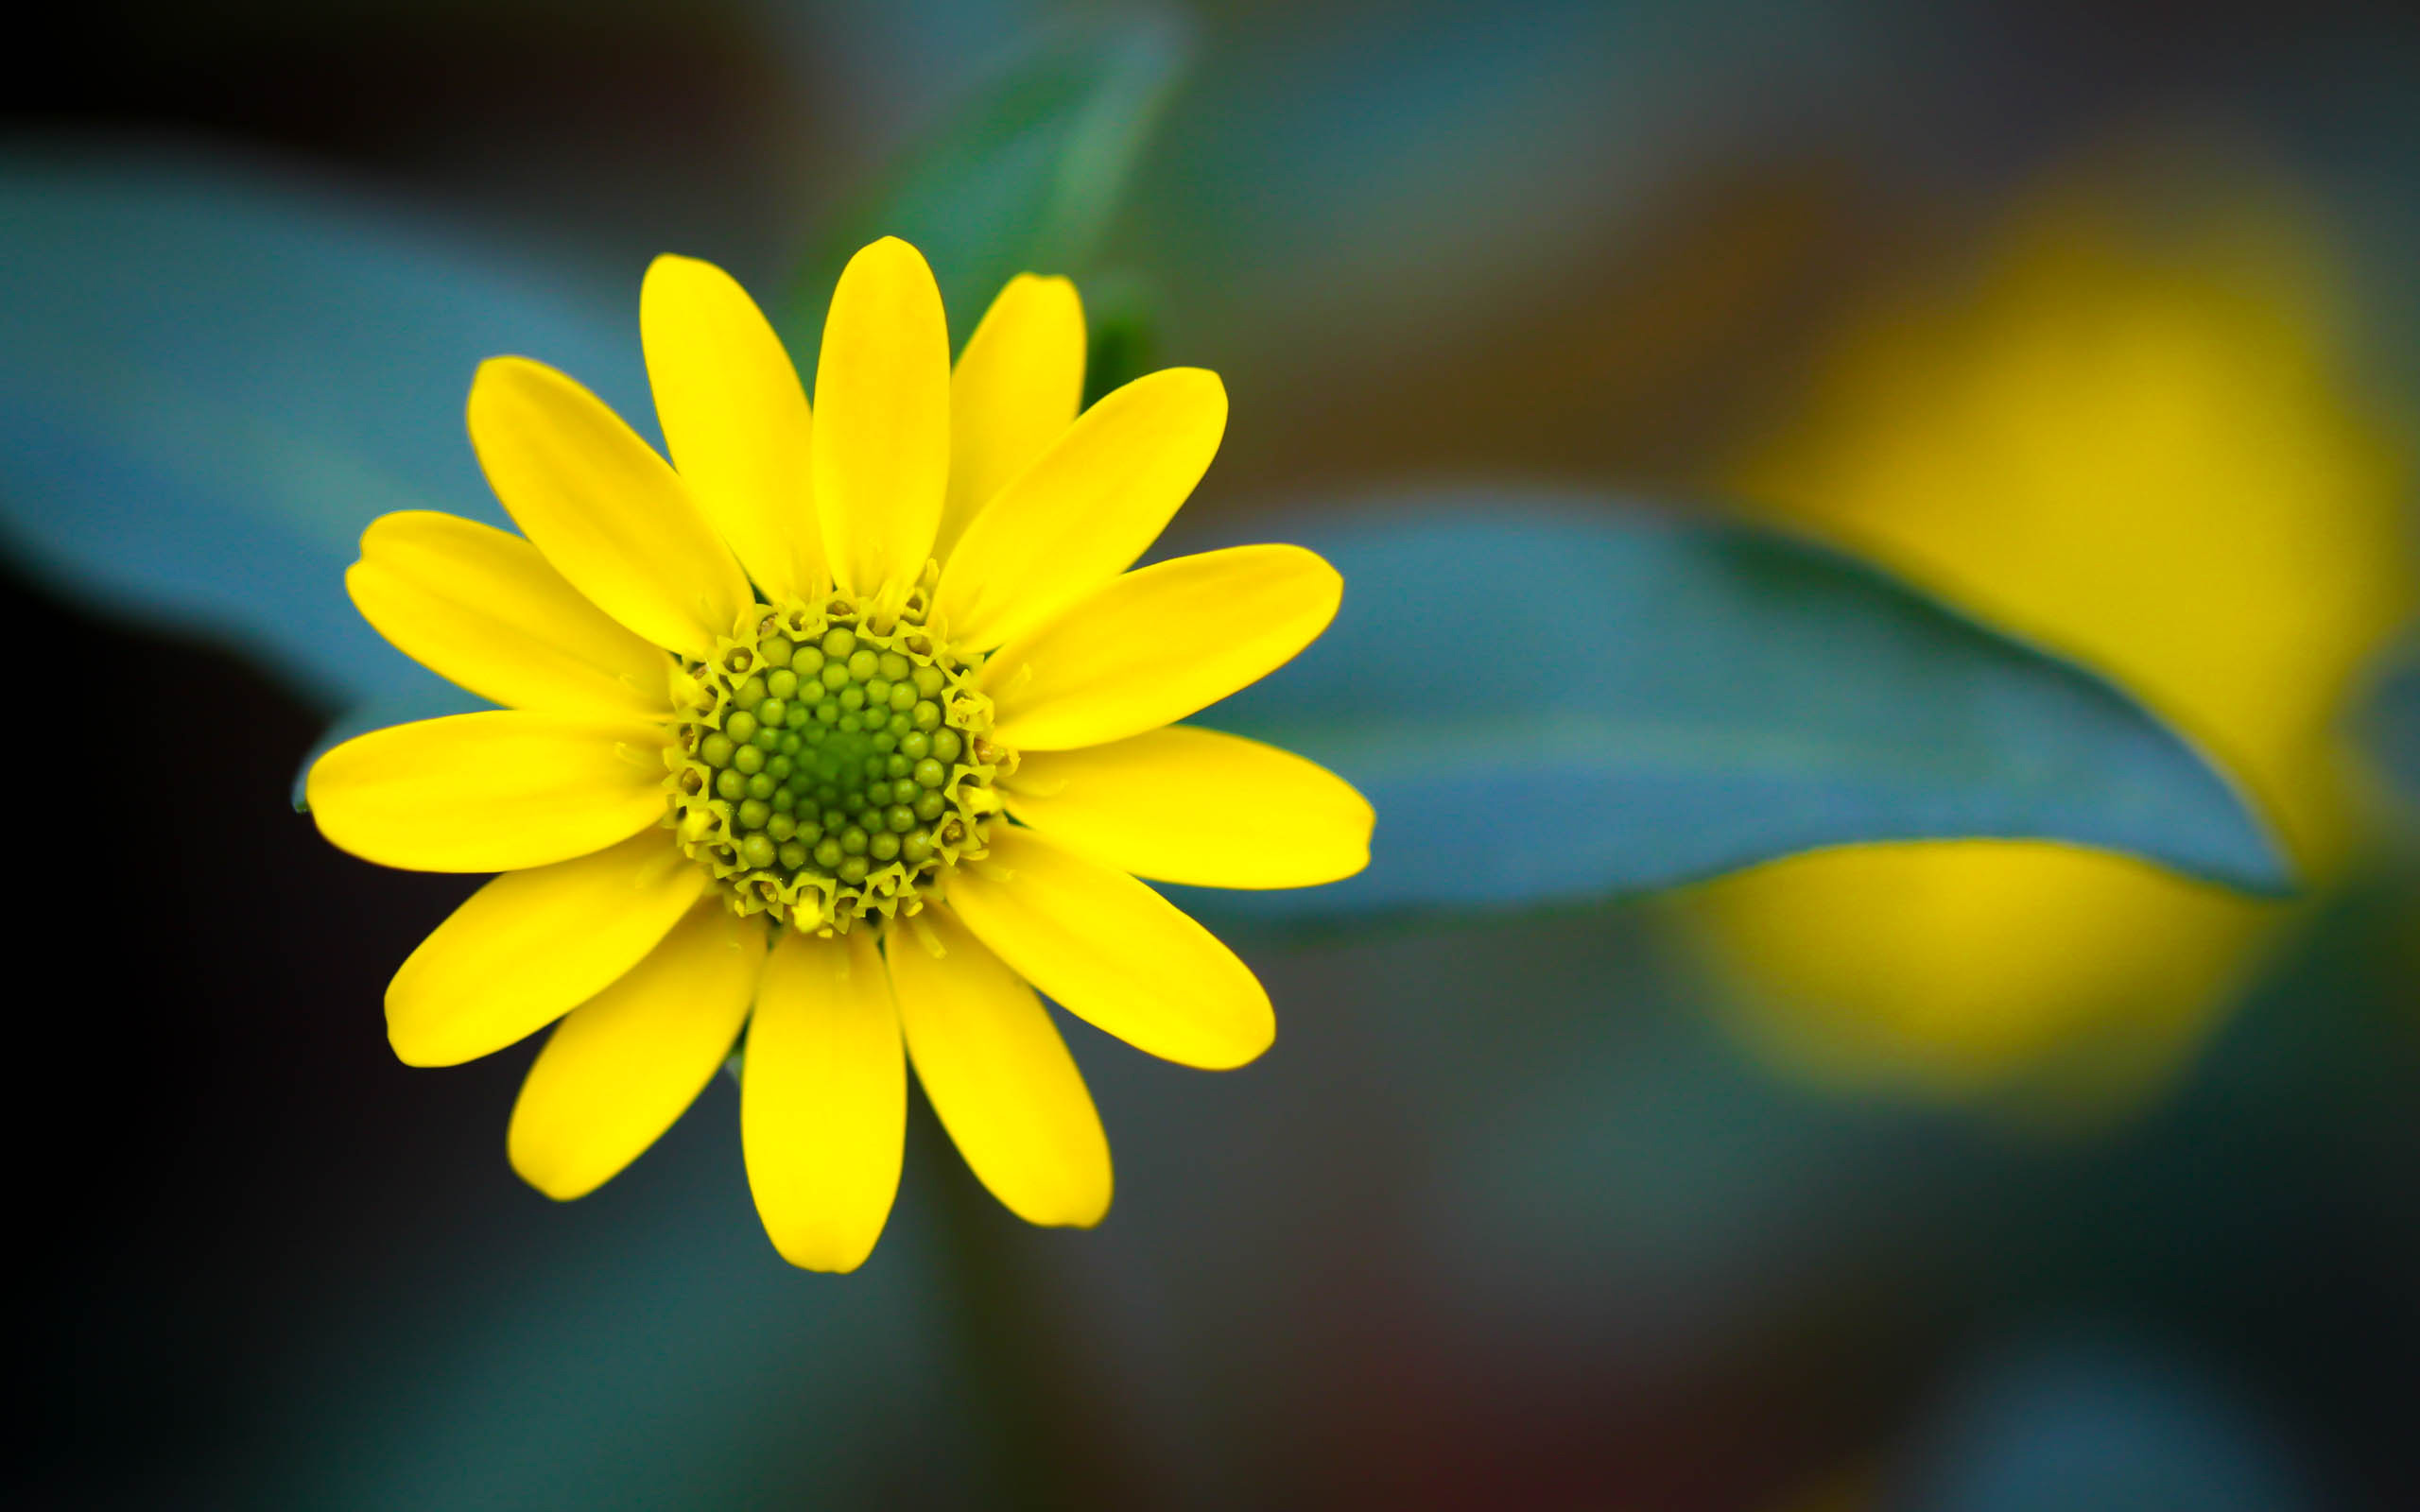 yellow flowers hd 1 wide wallpaper - hdflowerwallpaper